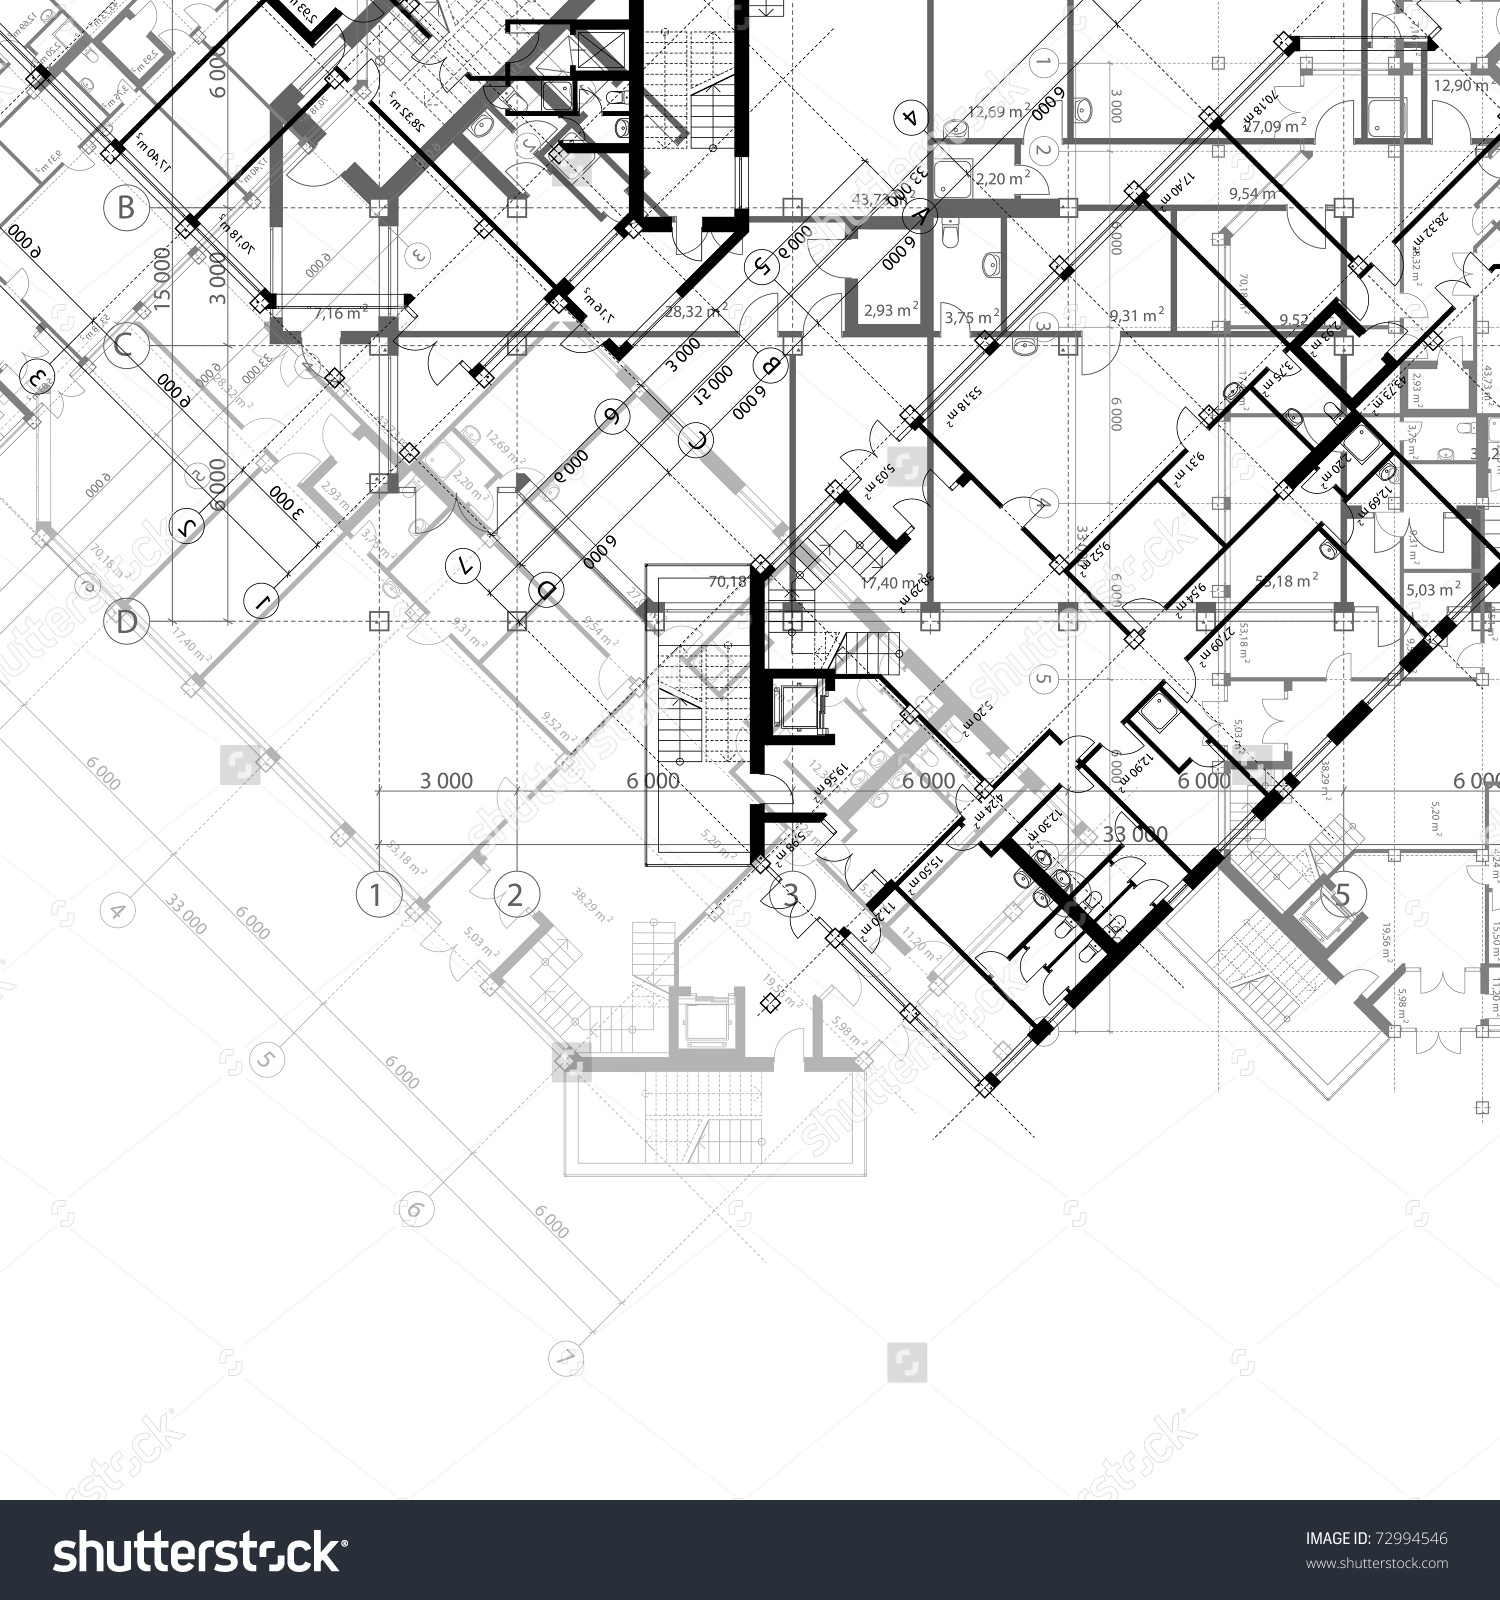 1500x1600 Architectural Drawings Vector